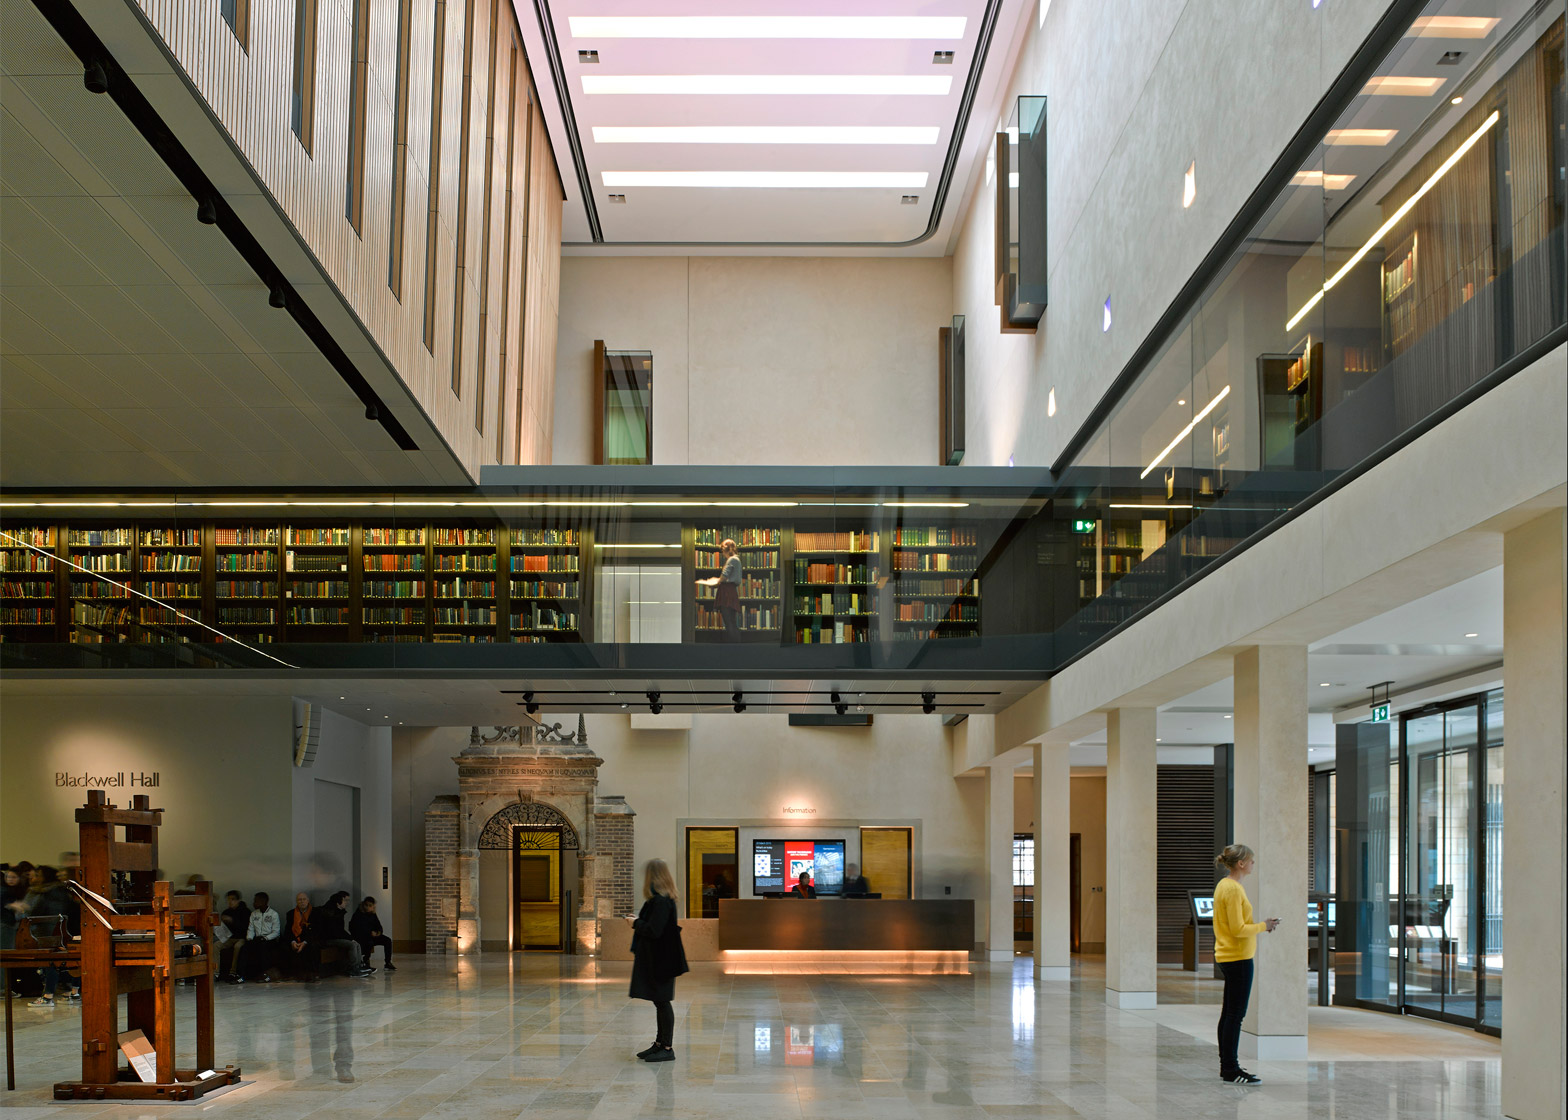 Weston Library by WilkinsonEyre. Photograph by James Brittain. Photograph by James Brittain